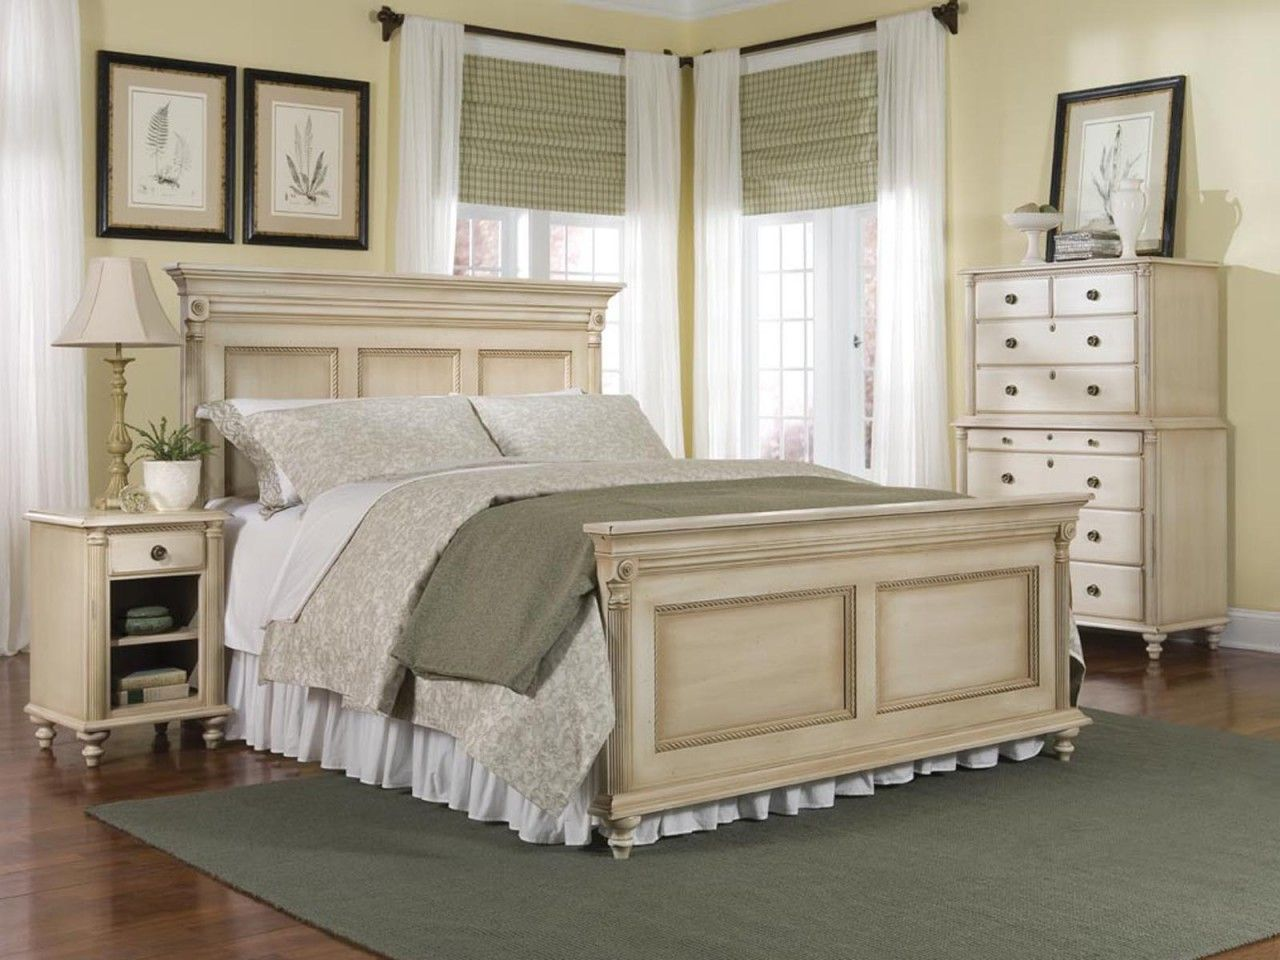 cream bedroom furniture setsDurham Furniture Savile Row